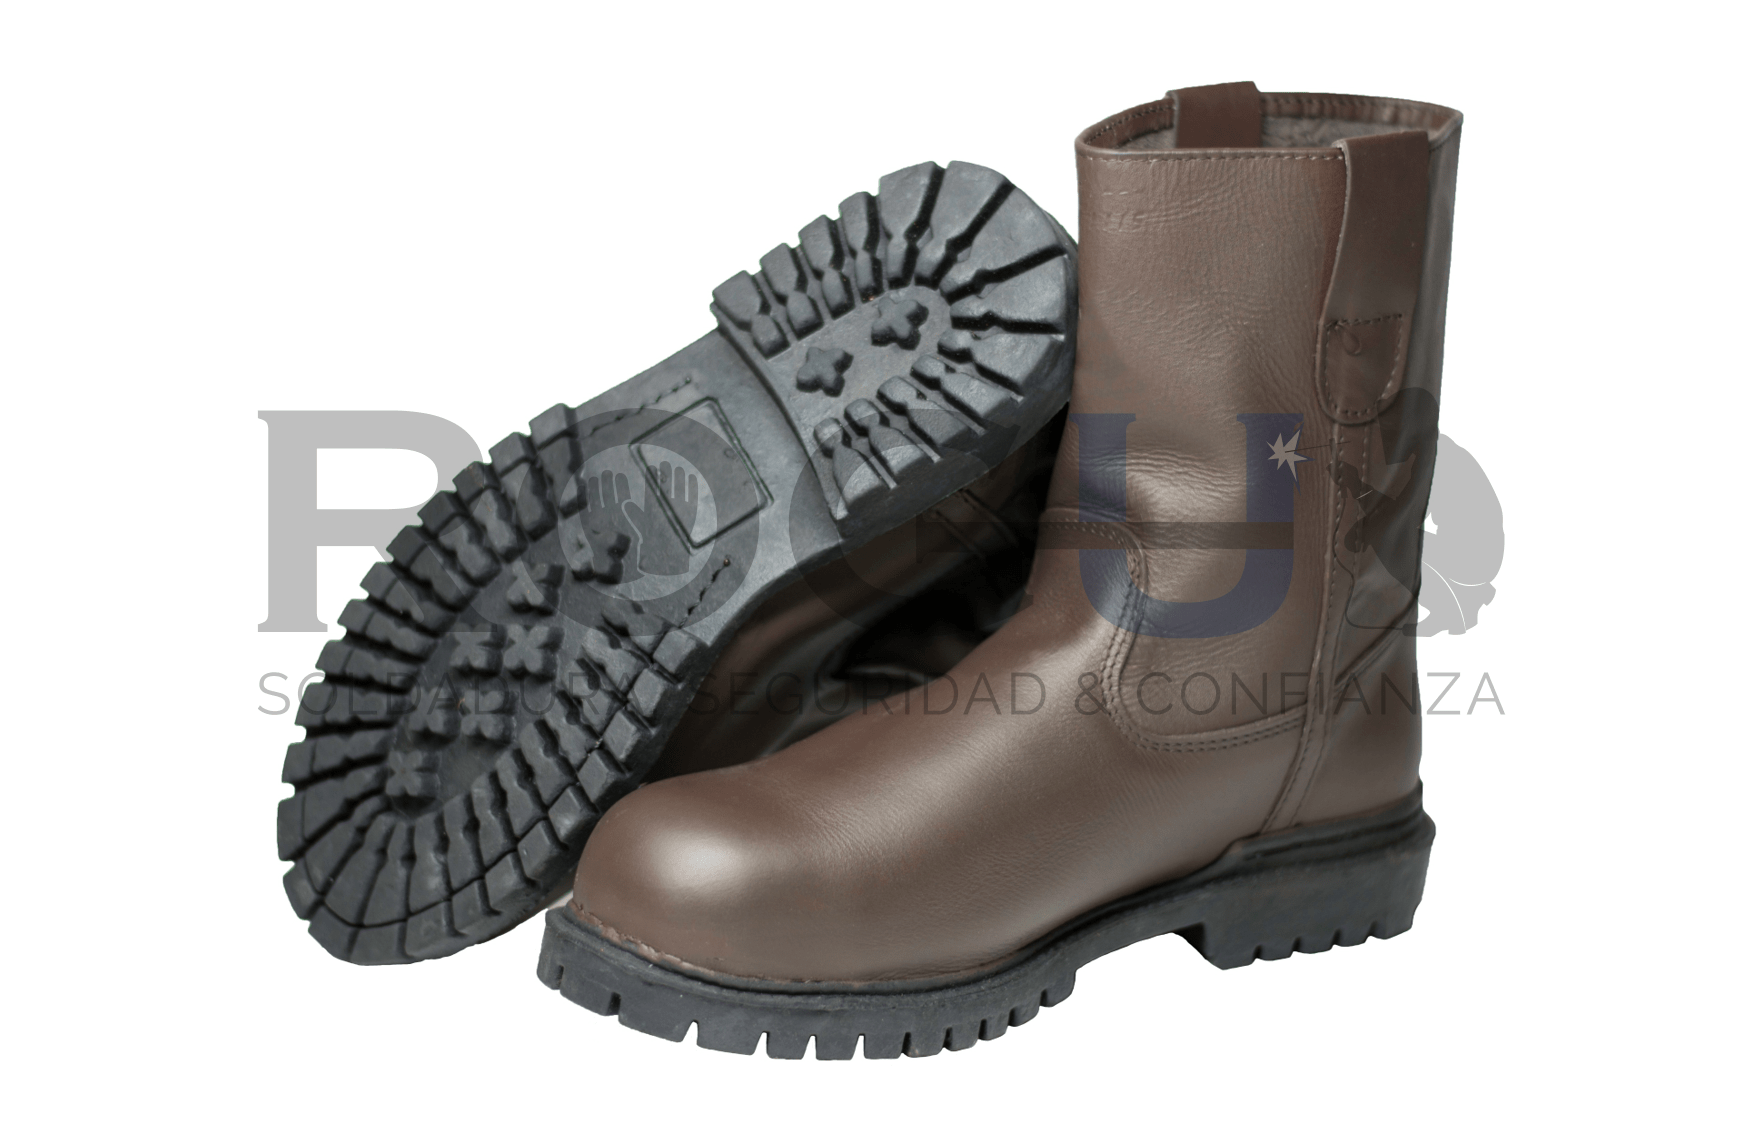 Bota Tipo Ropper Cafe 2